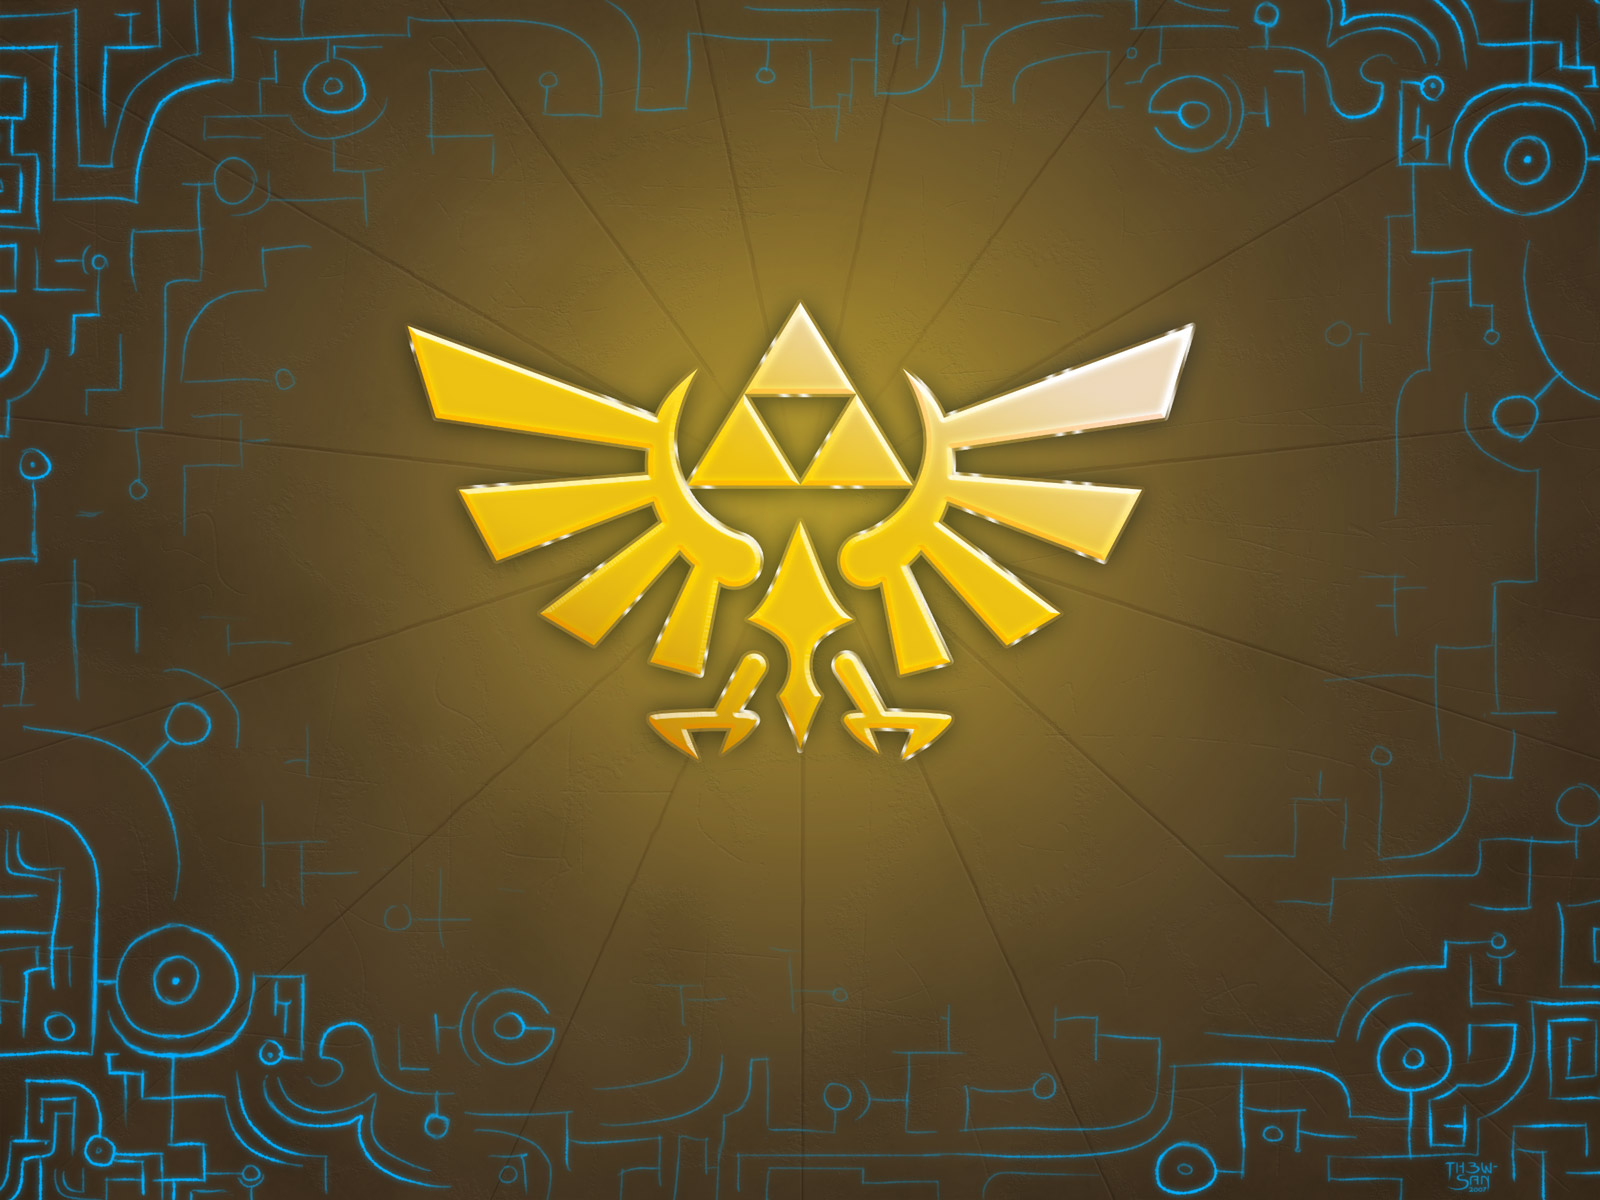 http://2.bp.blogspot.com/-k97r0fGcH4w/T8p7Z0GhruI/AAAAAAAAA54/21RjiETL9L8/s1600/zeldas+royal+crest+tri+force+the+legend+of+zelda+link+wallpaper+background.jpg